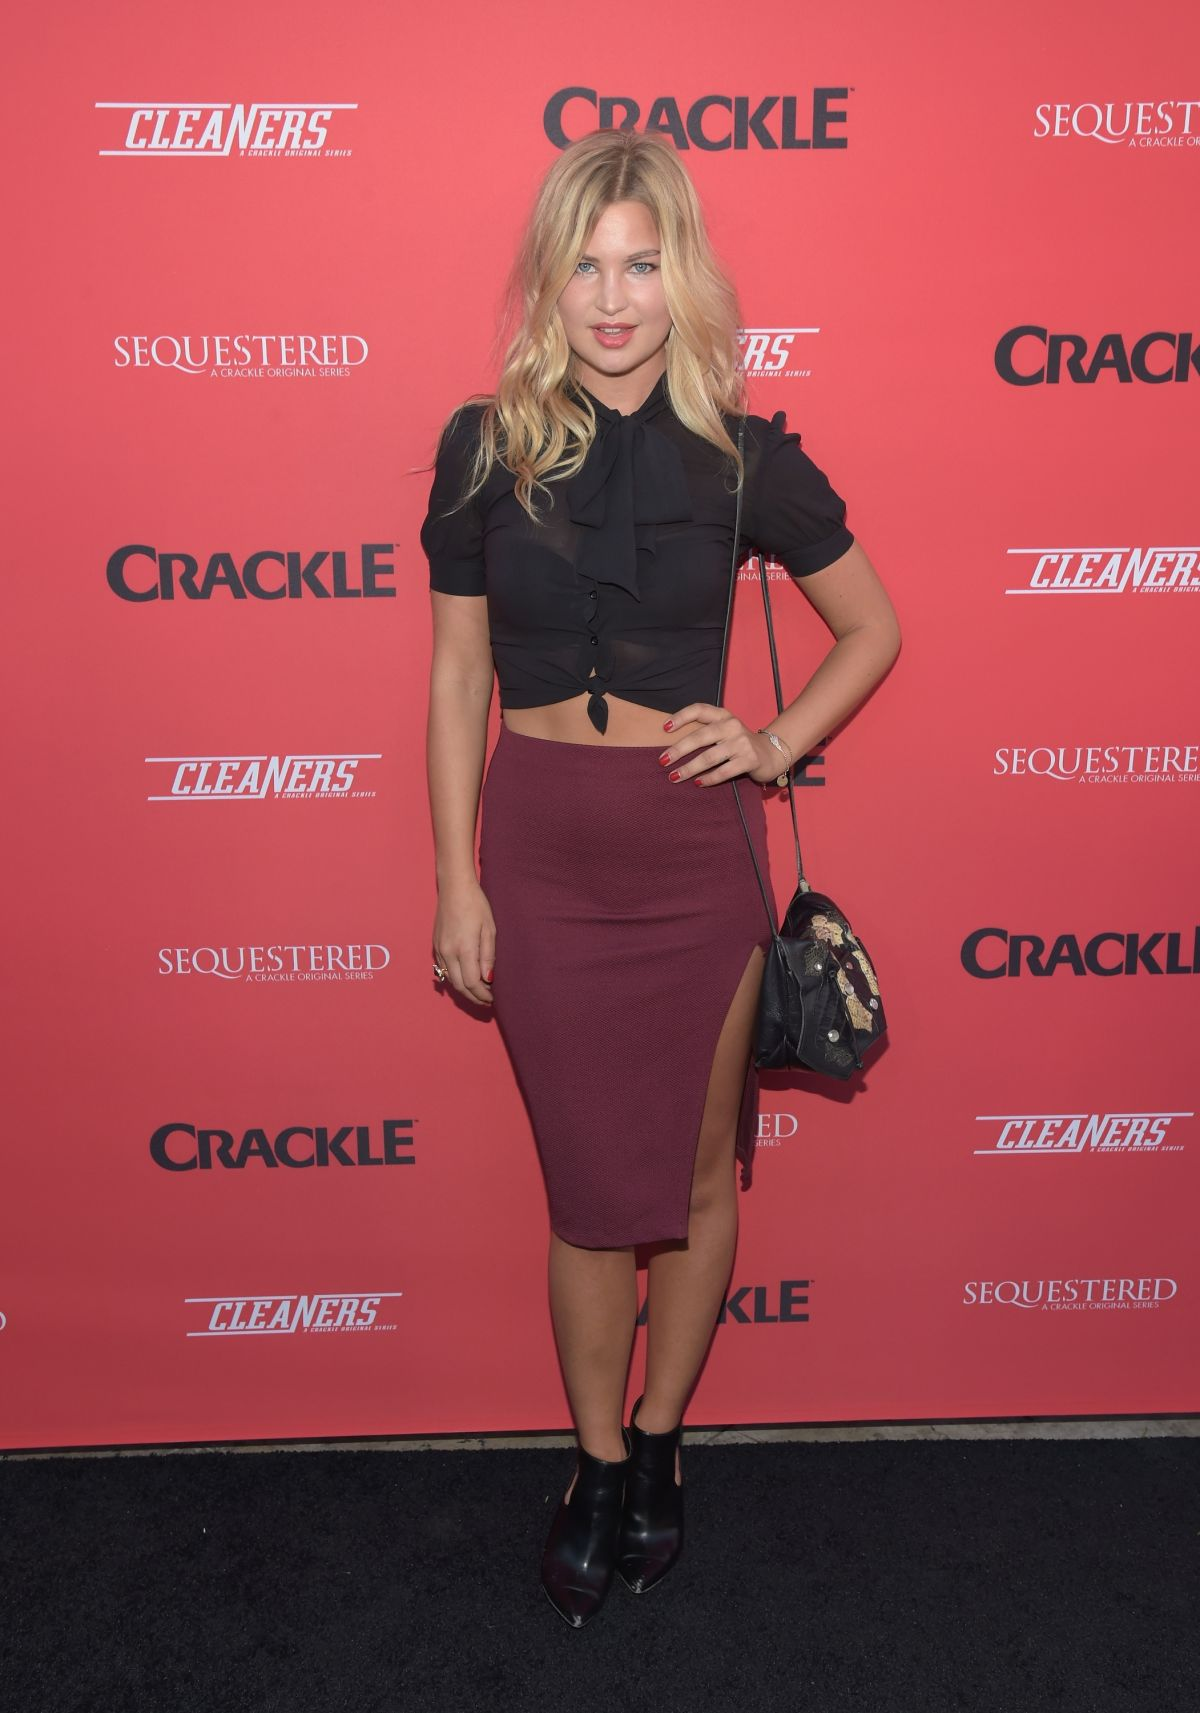 JENNIFER AKERMAN at Sequestered and Cleaners Premieres in West Hollywood